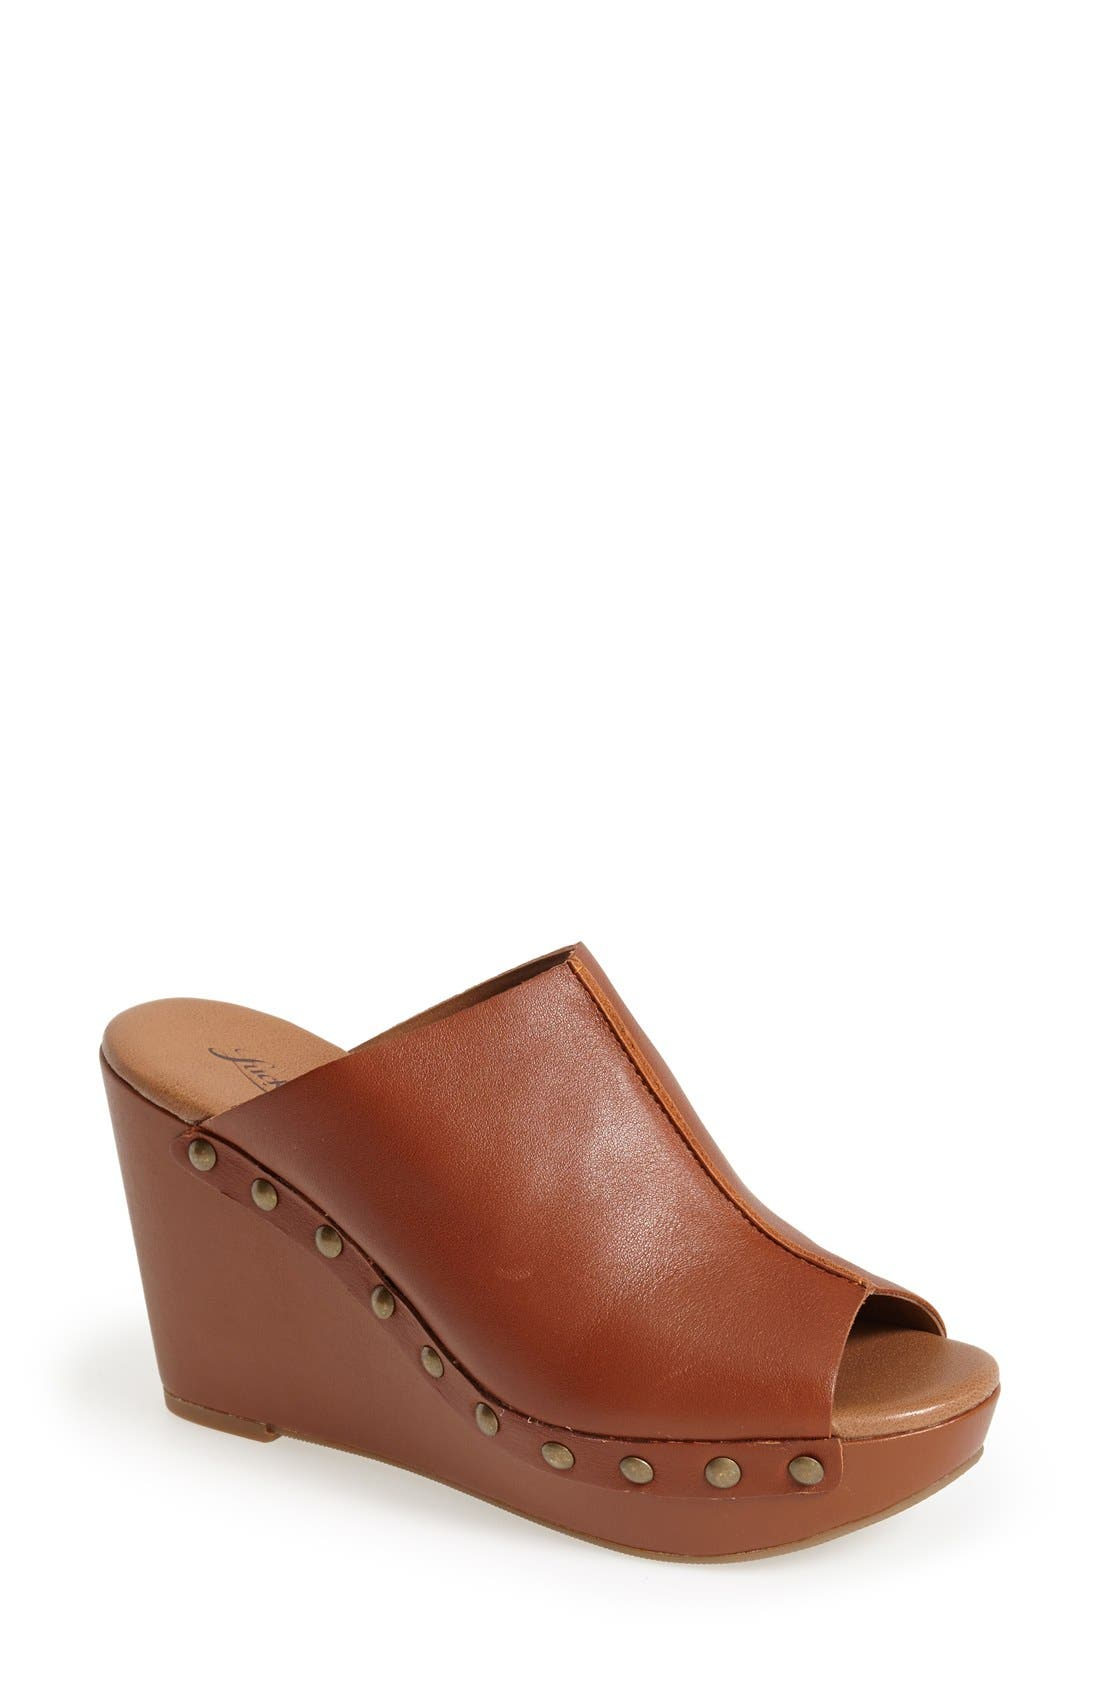 Alternate Image 1 Selected - Lucky Brand 'Lucky Malayah' Leather Wedge Sandal (Women)